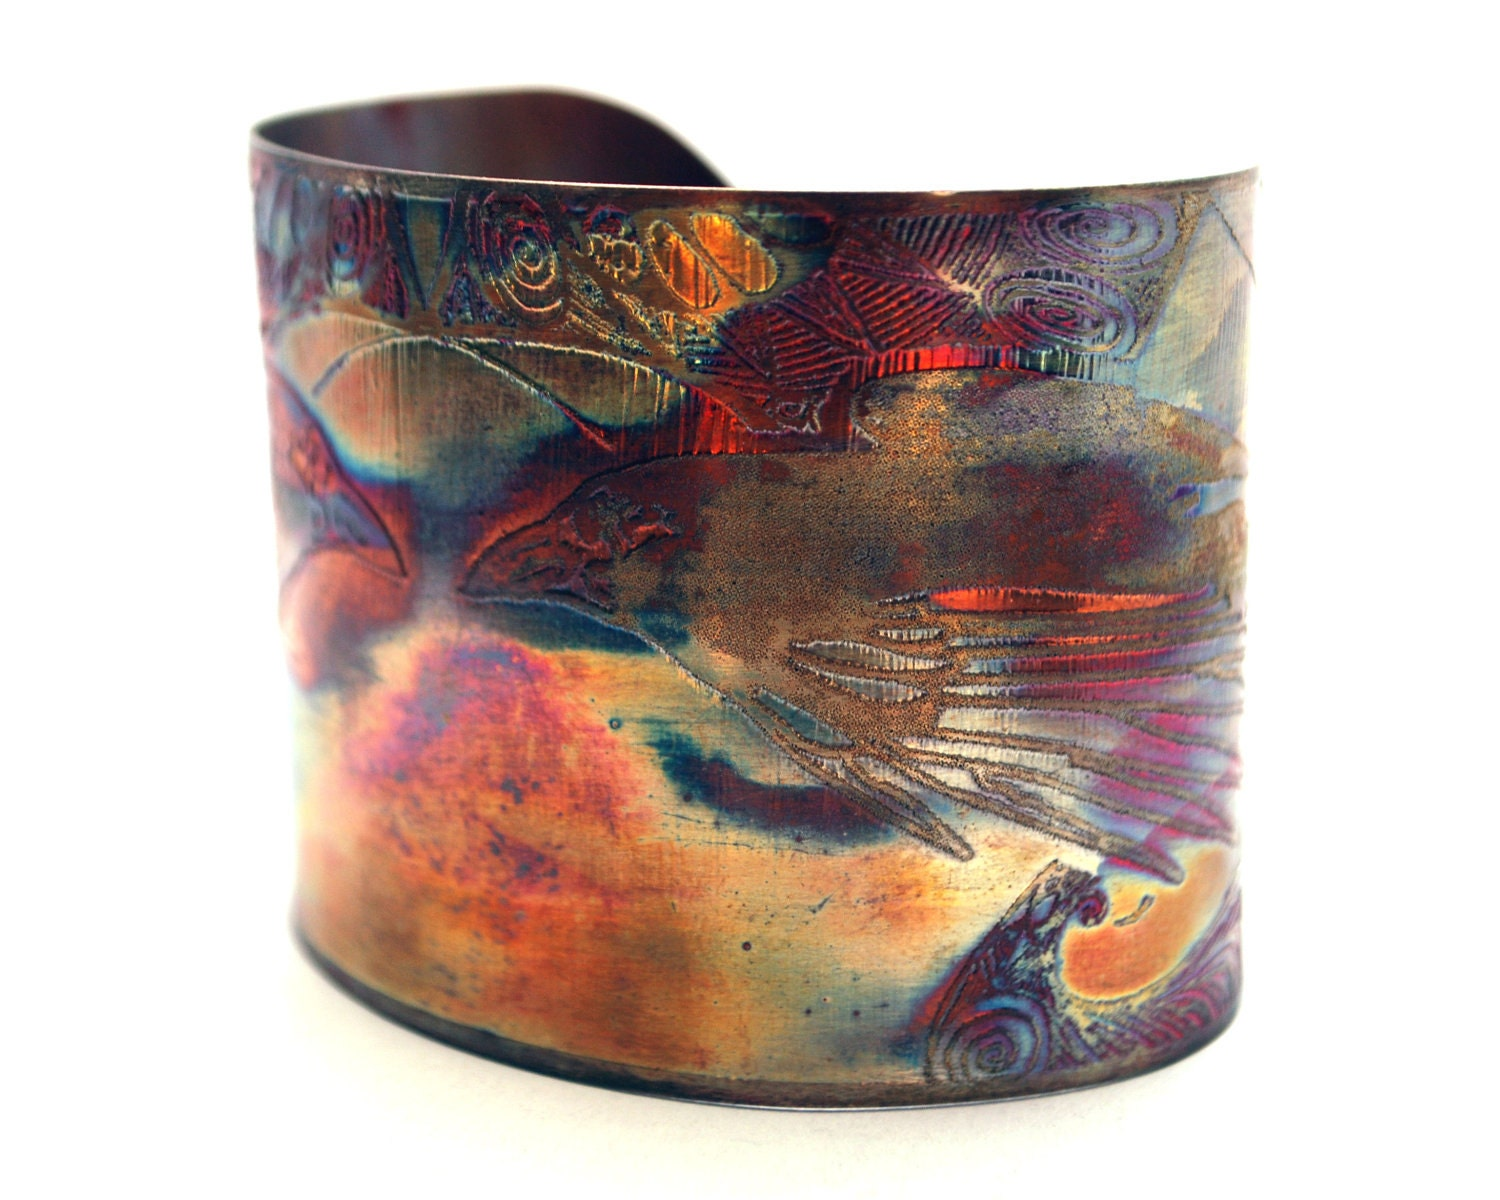 Etched copper crow raven cuff bracelet - annamcdade